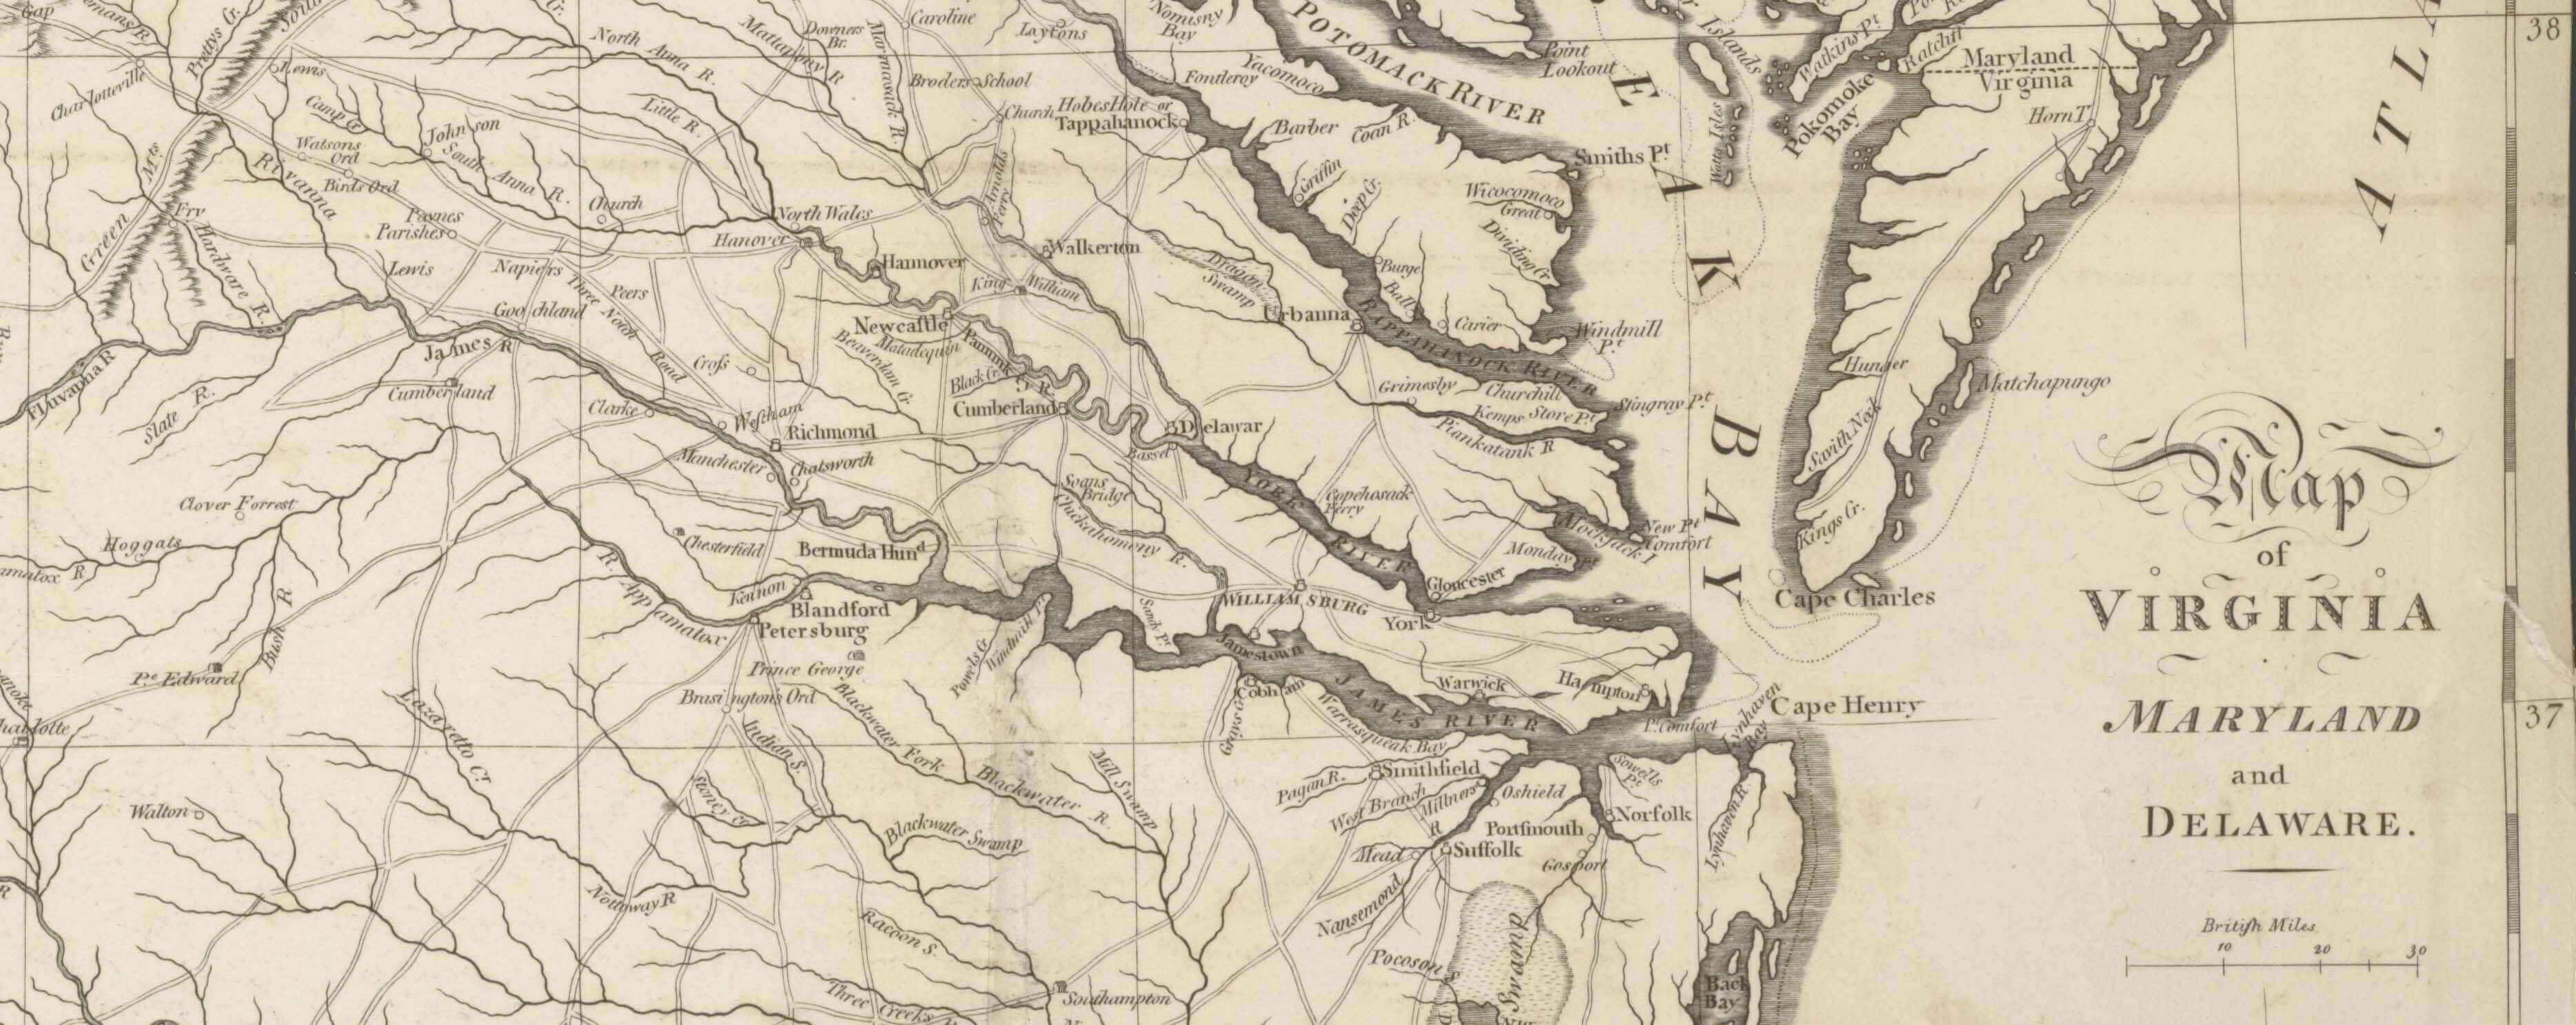 Detail from 1794 map of virginia, maryland and delaware with Charlottesville in the upper left, on t...